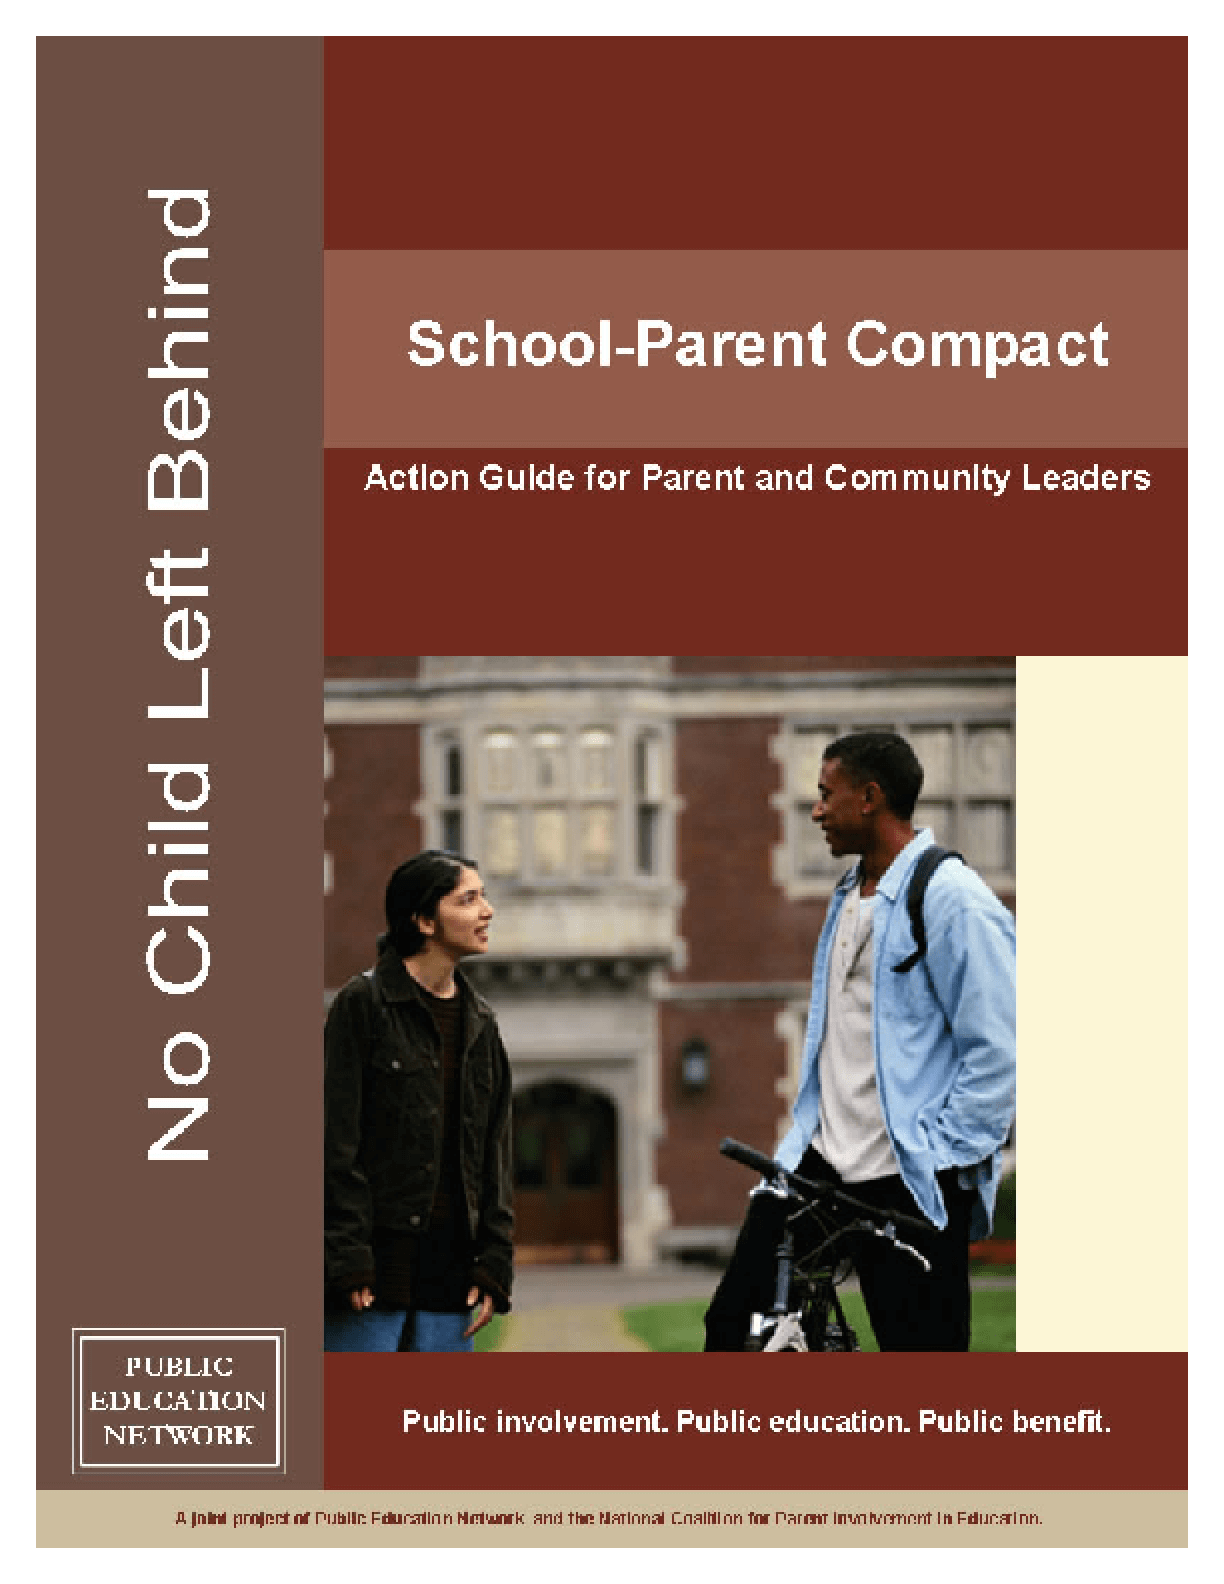 School-Parent Compact: Action Guide for Parent and Community Leaders